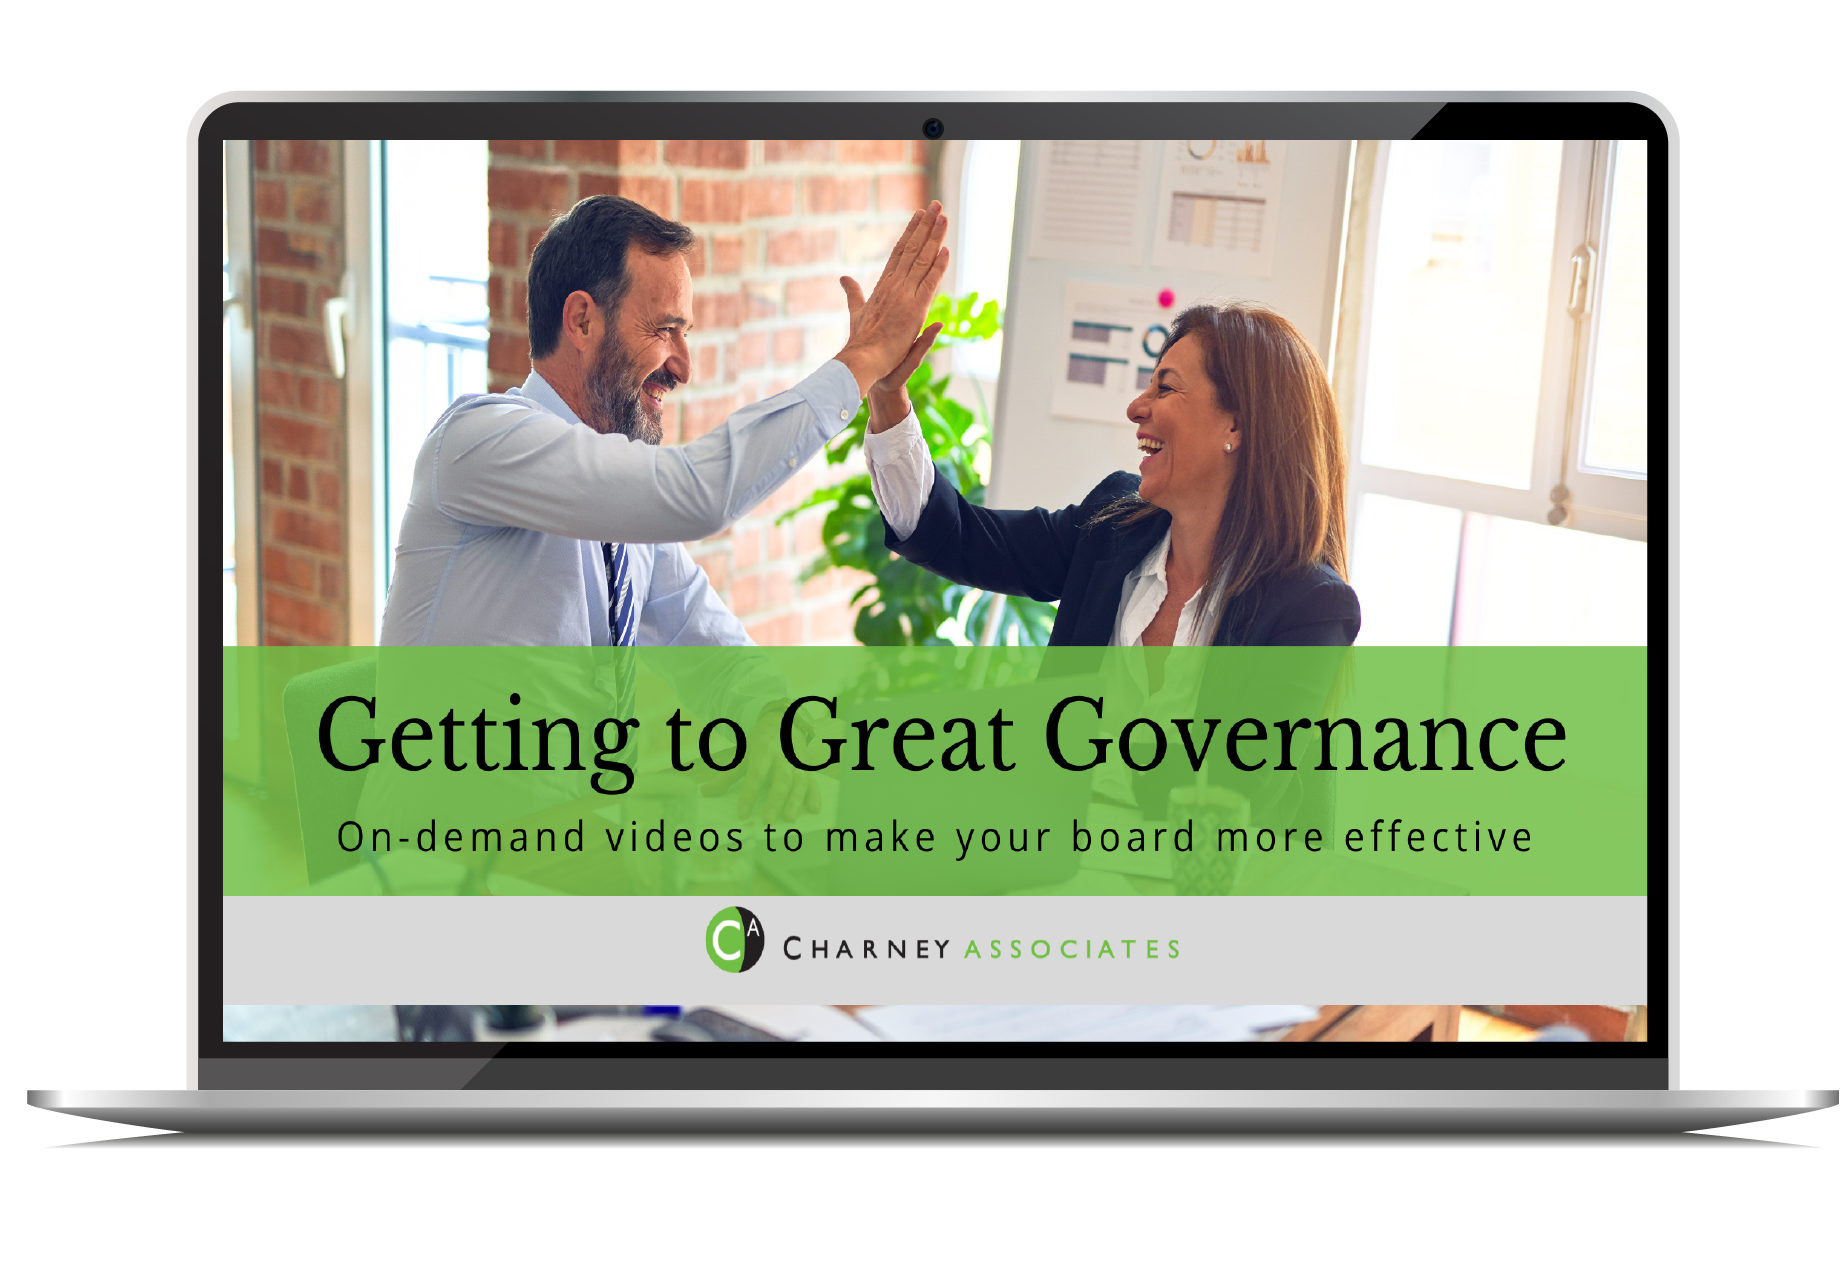 Laptop screen with image of two professionals, one man and one woman, giving each other a high five. The banner across the screen says Getting to Great Governance: On-demand videos to help your board be more effective